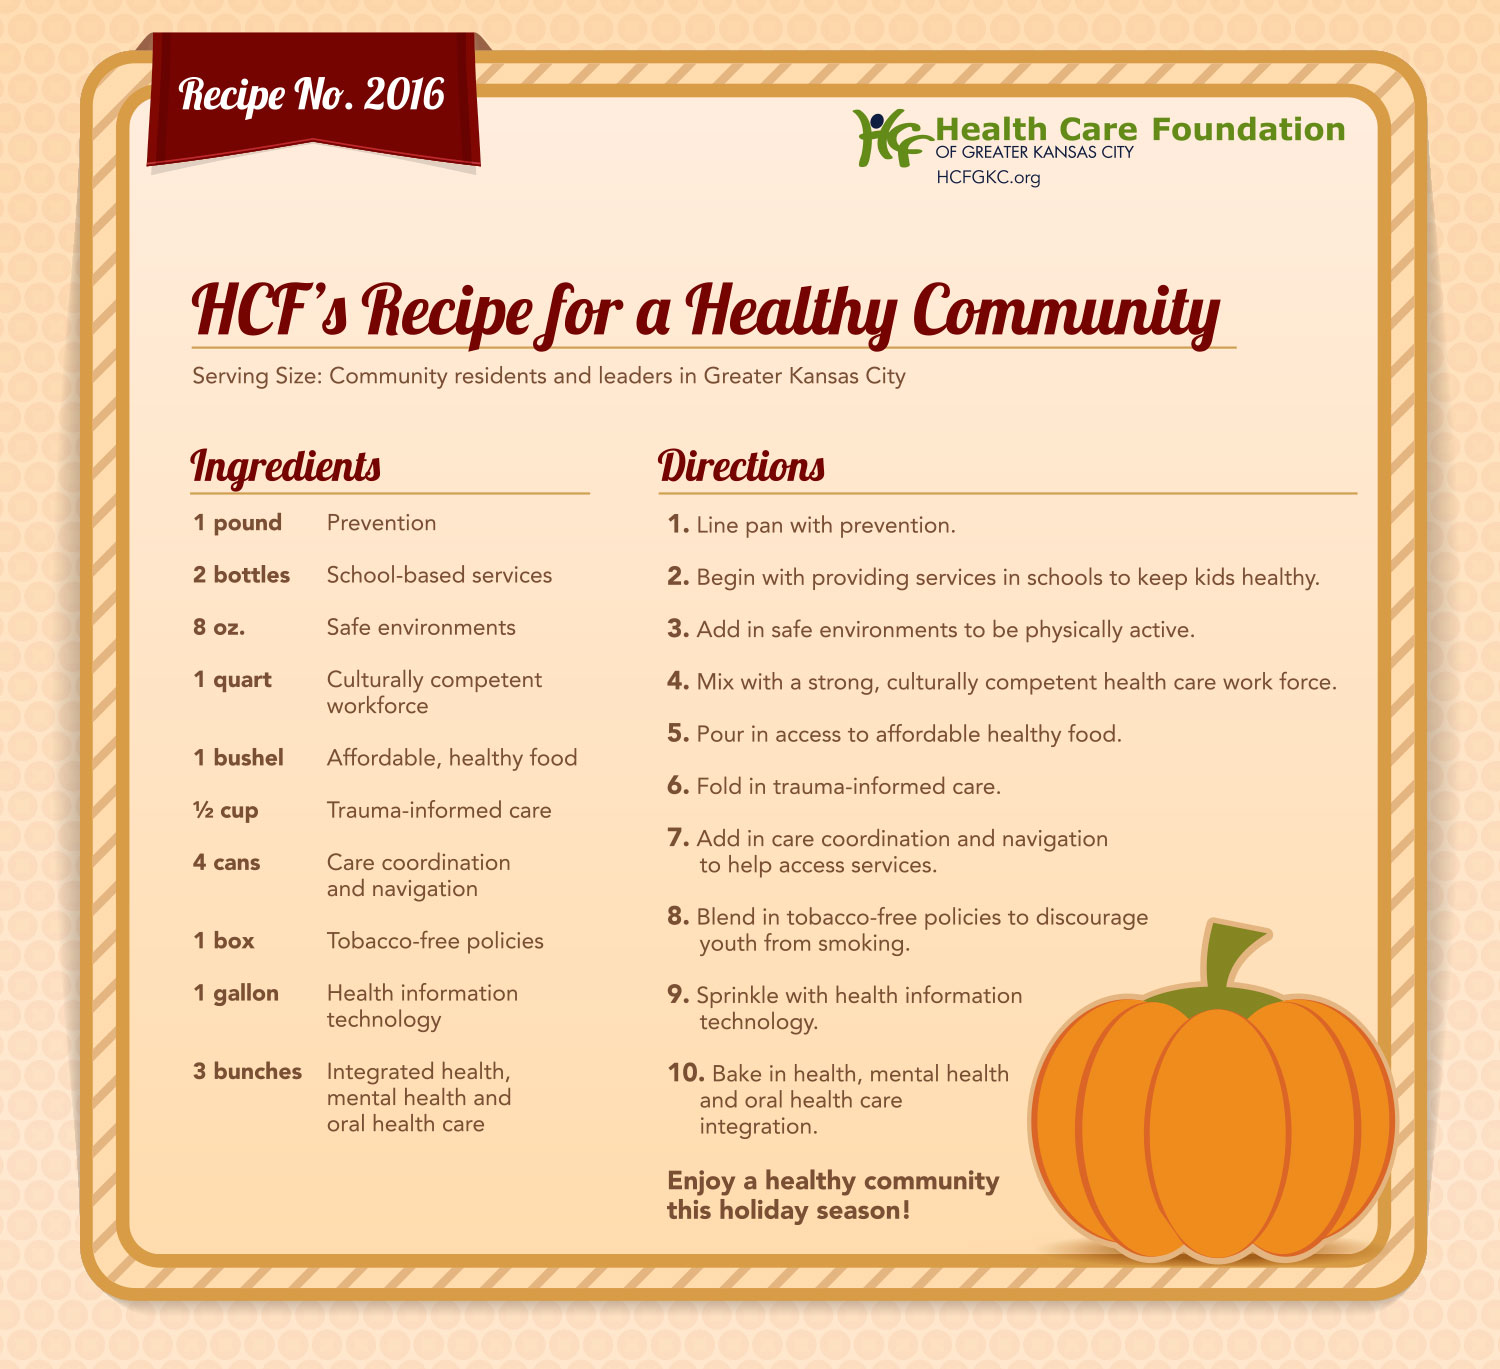 HCF's Recipe for a Healthy Community